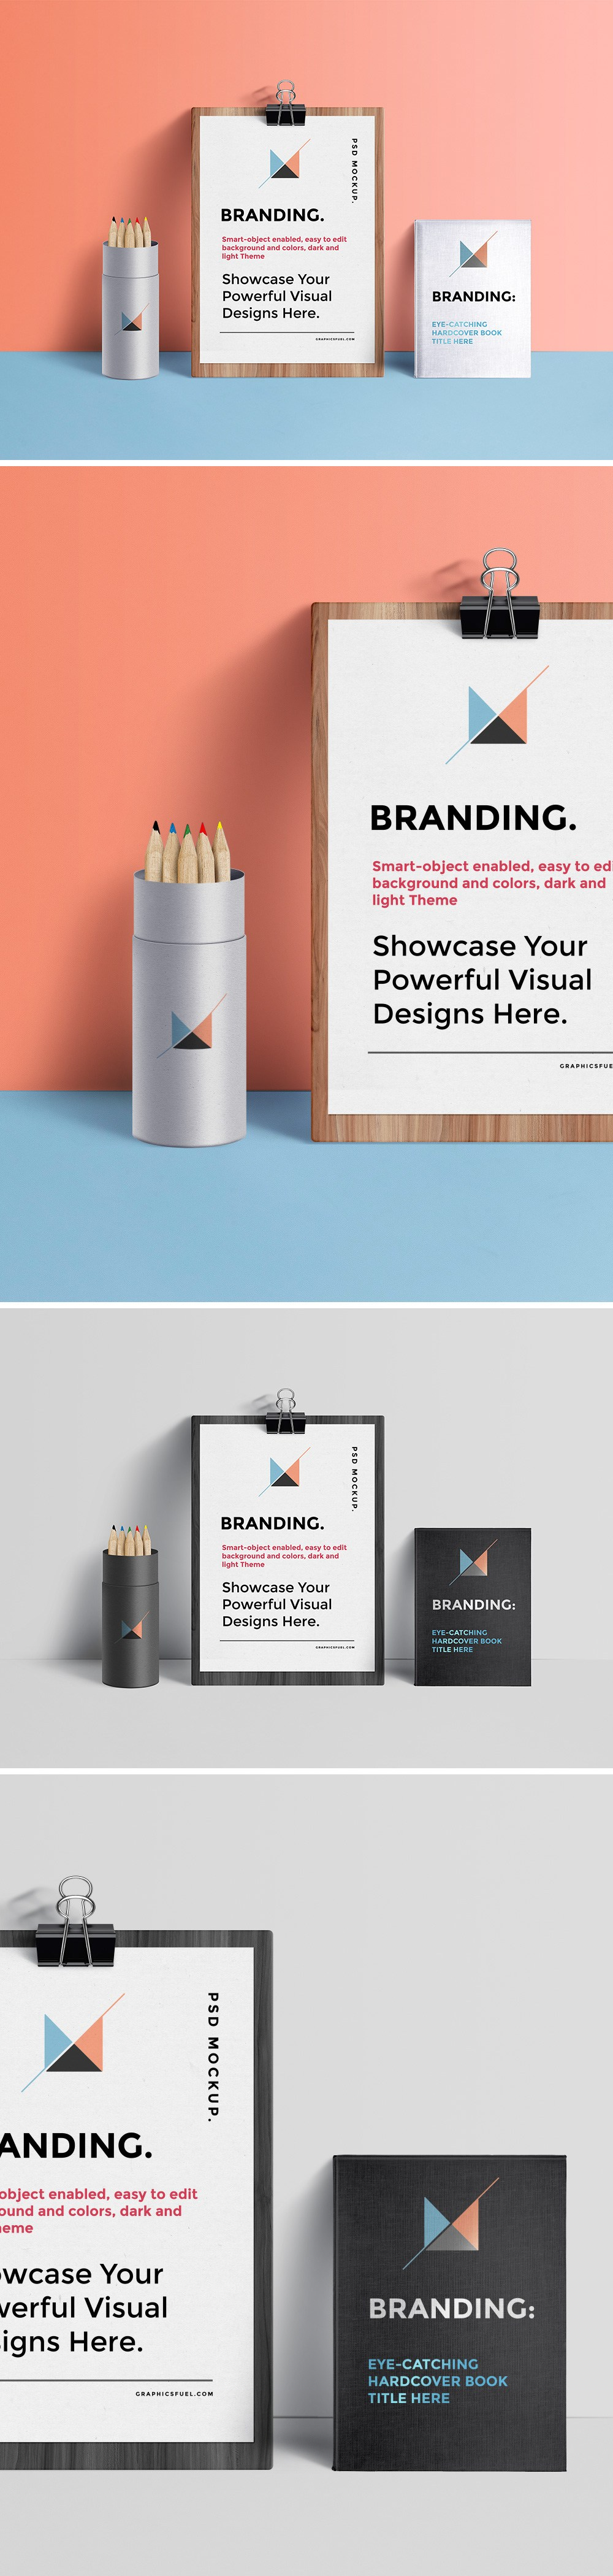 branding identity mockup free psd template responsive joomla and